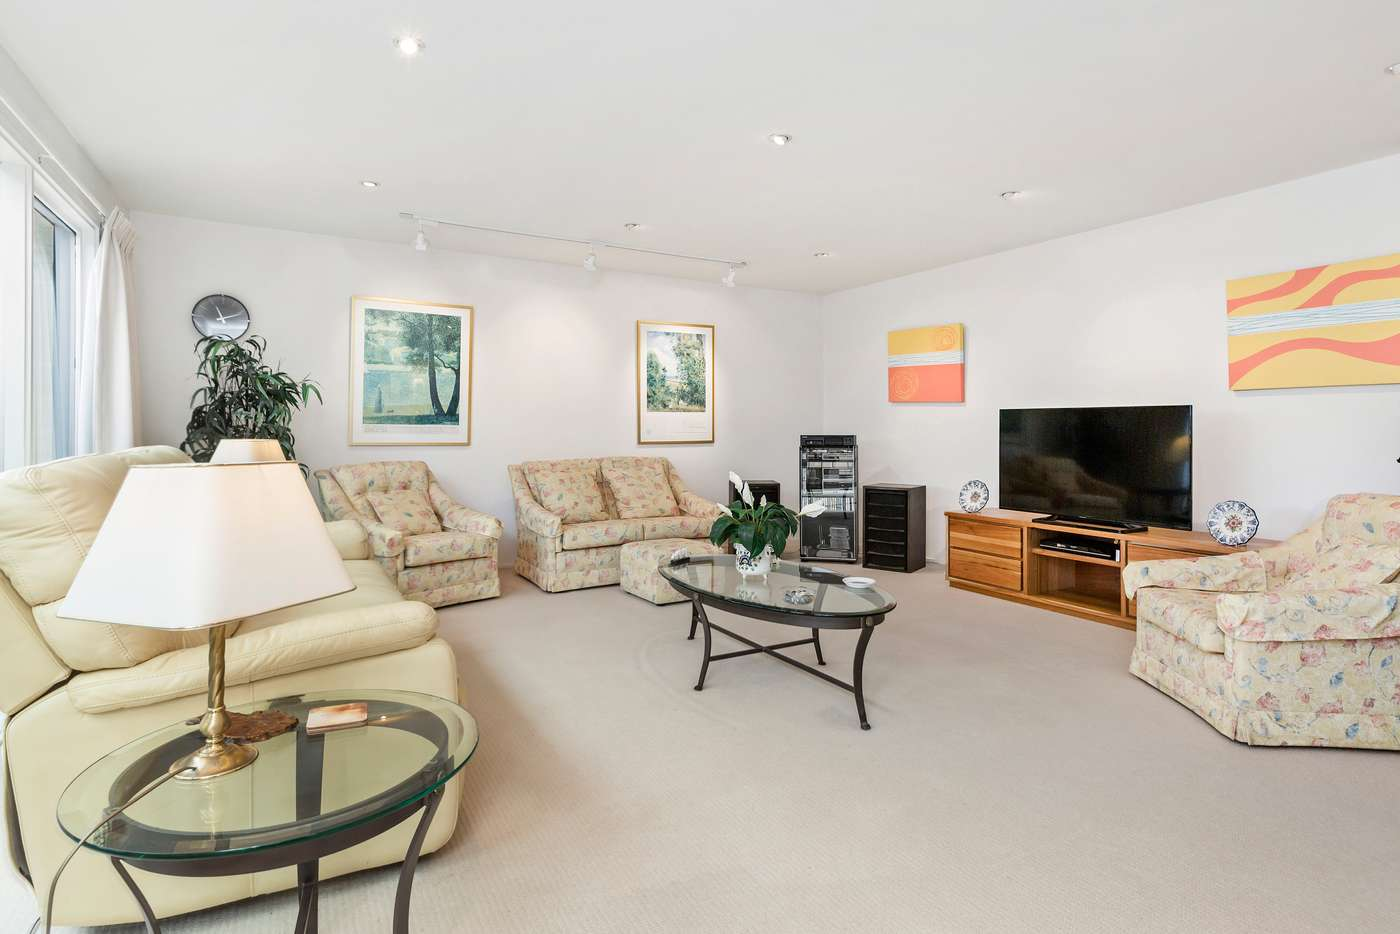 Fifth view of Homely house listing, 10 Wynnstay Road, Mount Eliza VIC 3930